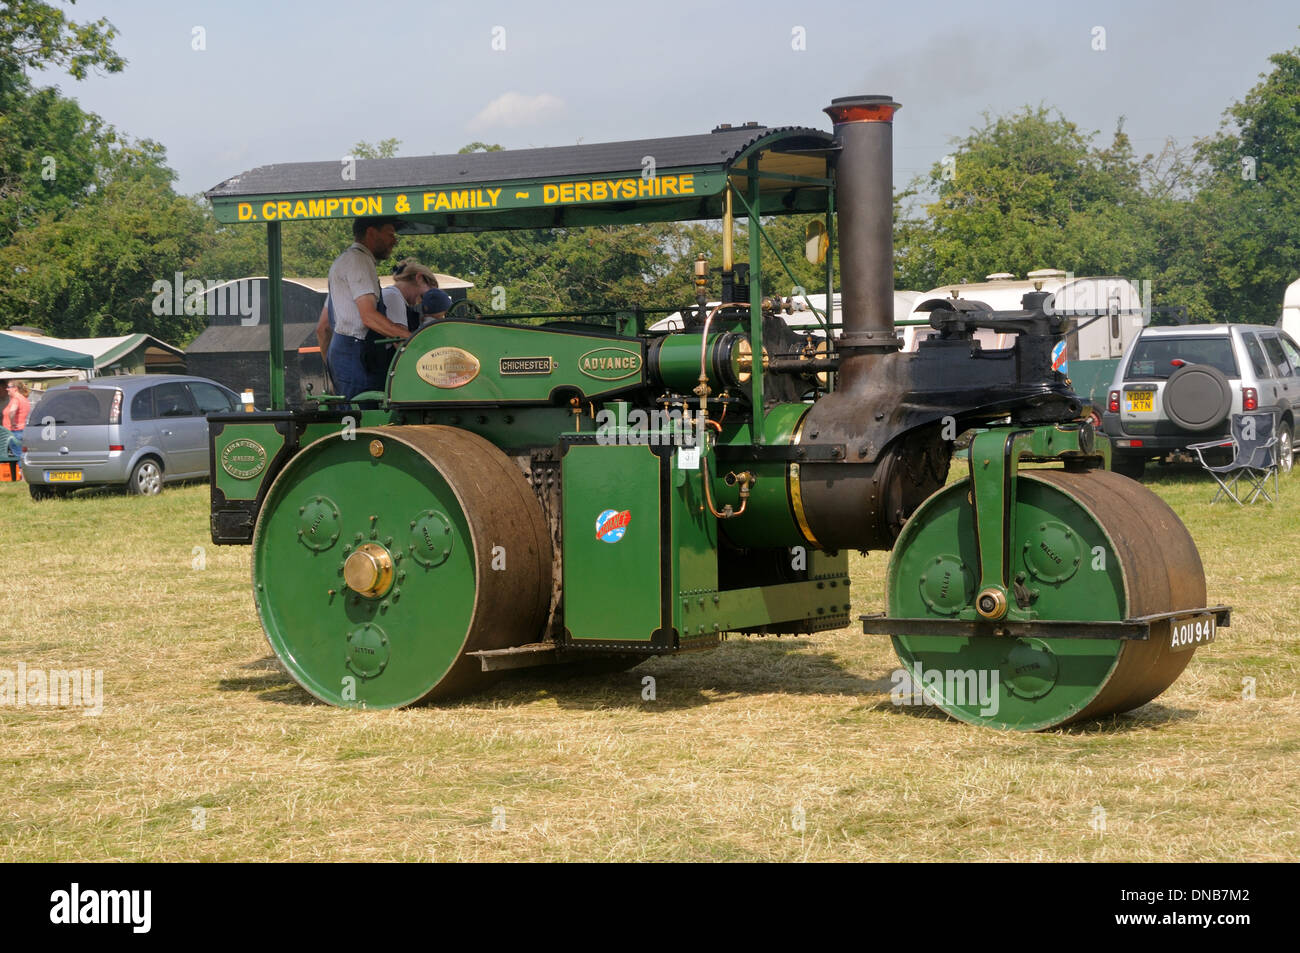 1936 Wallis & Steevens road roller at the 2013 Rempstone Steam & Country Fair, Turnpost Farm, Wymeswold, Leicestershire, England - Stock Image